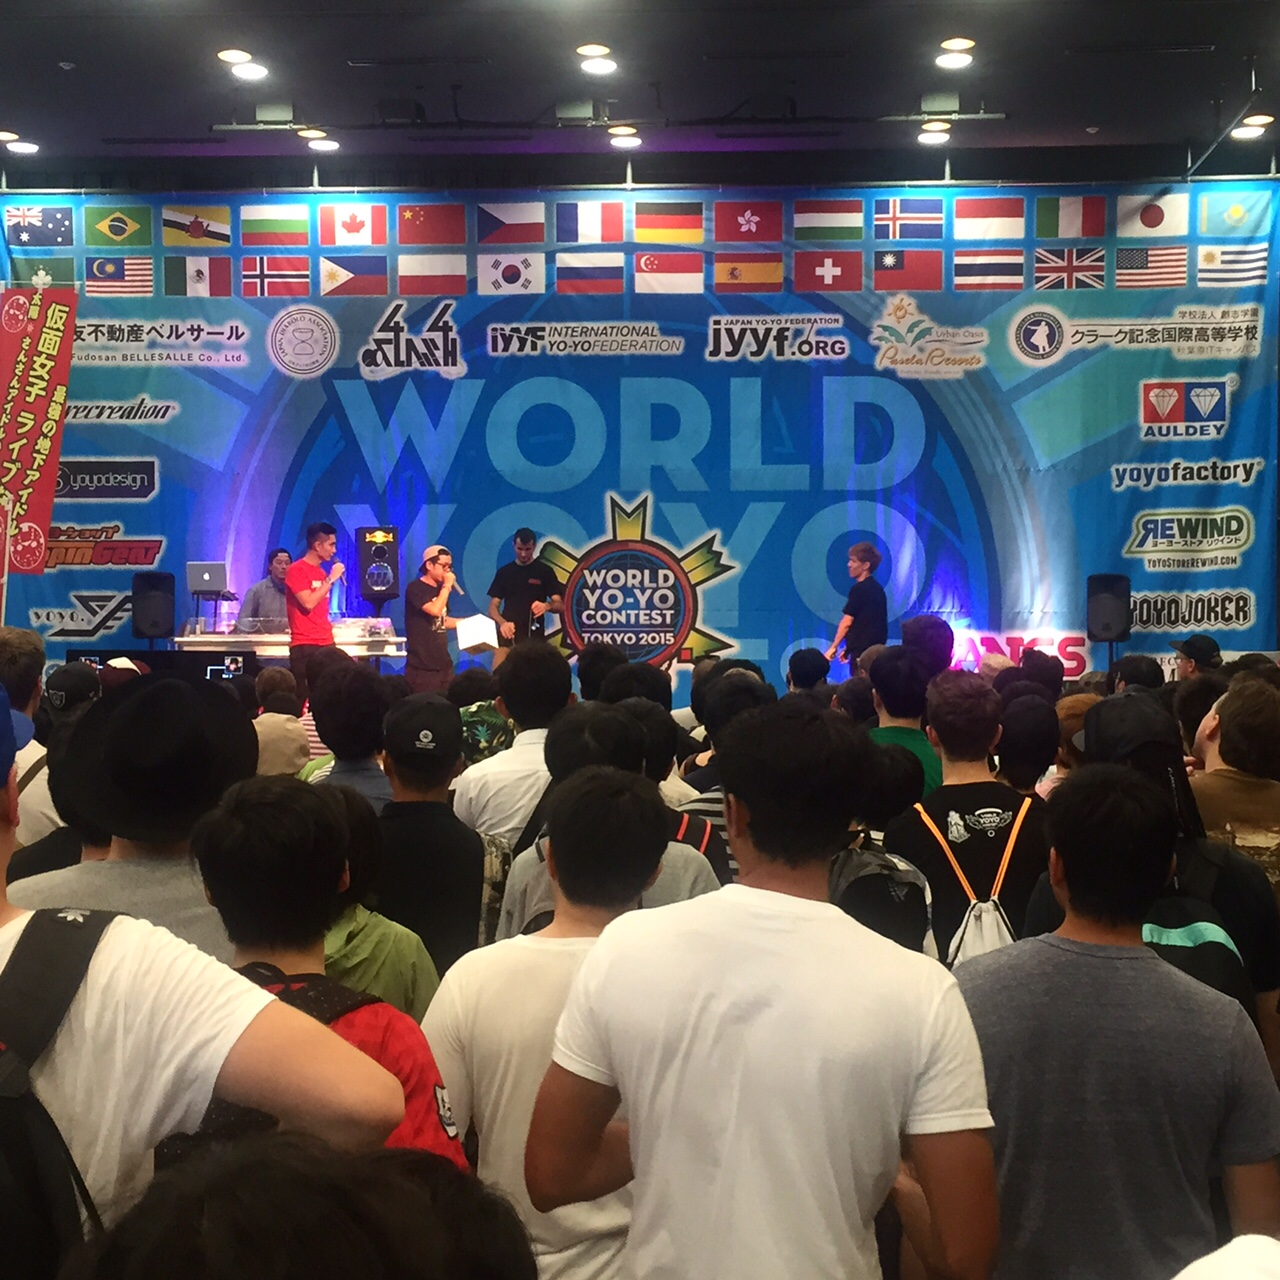 EWIN GOES TO WORLD YOYO CONTEST TOKYO JAPAN